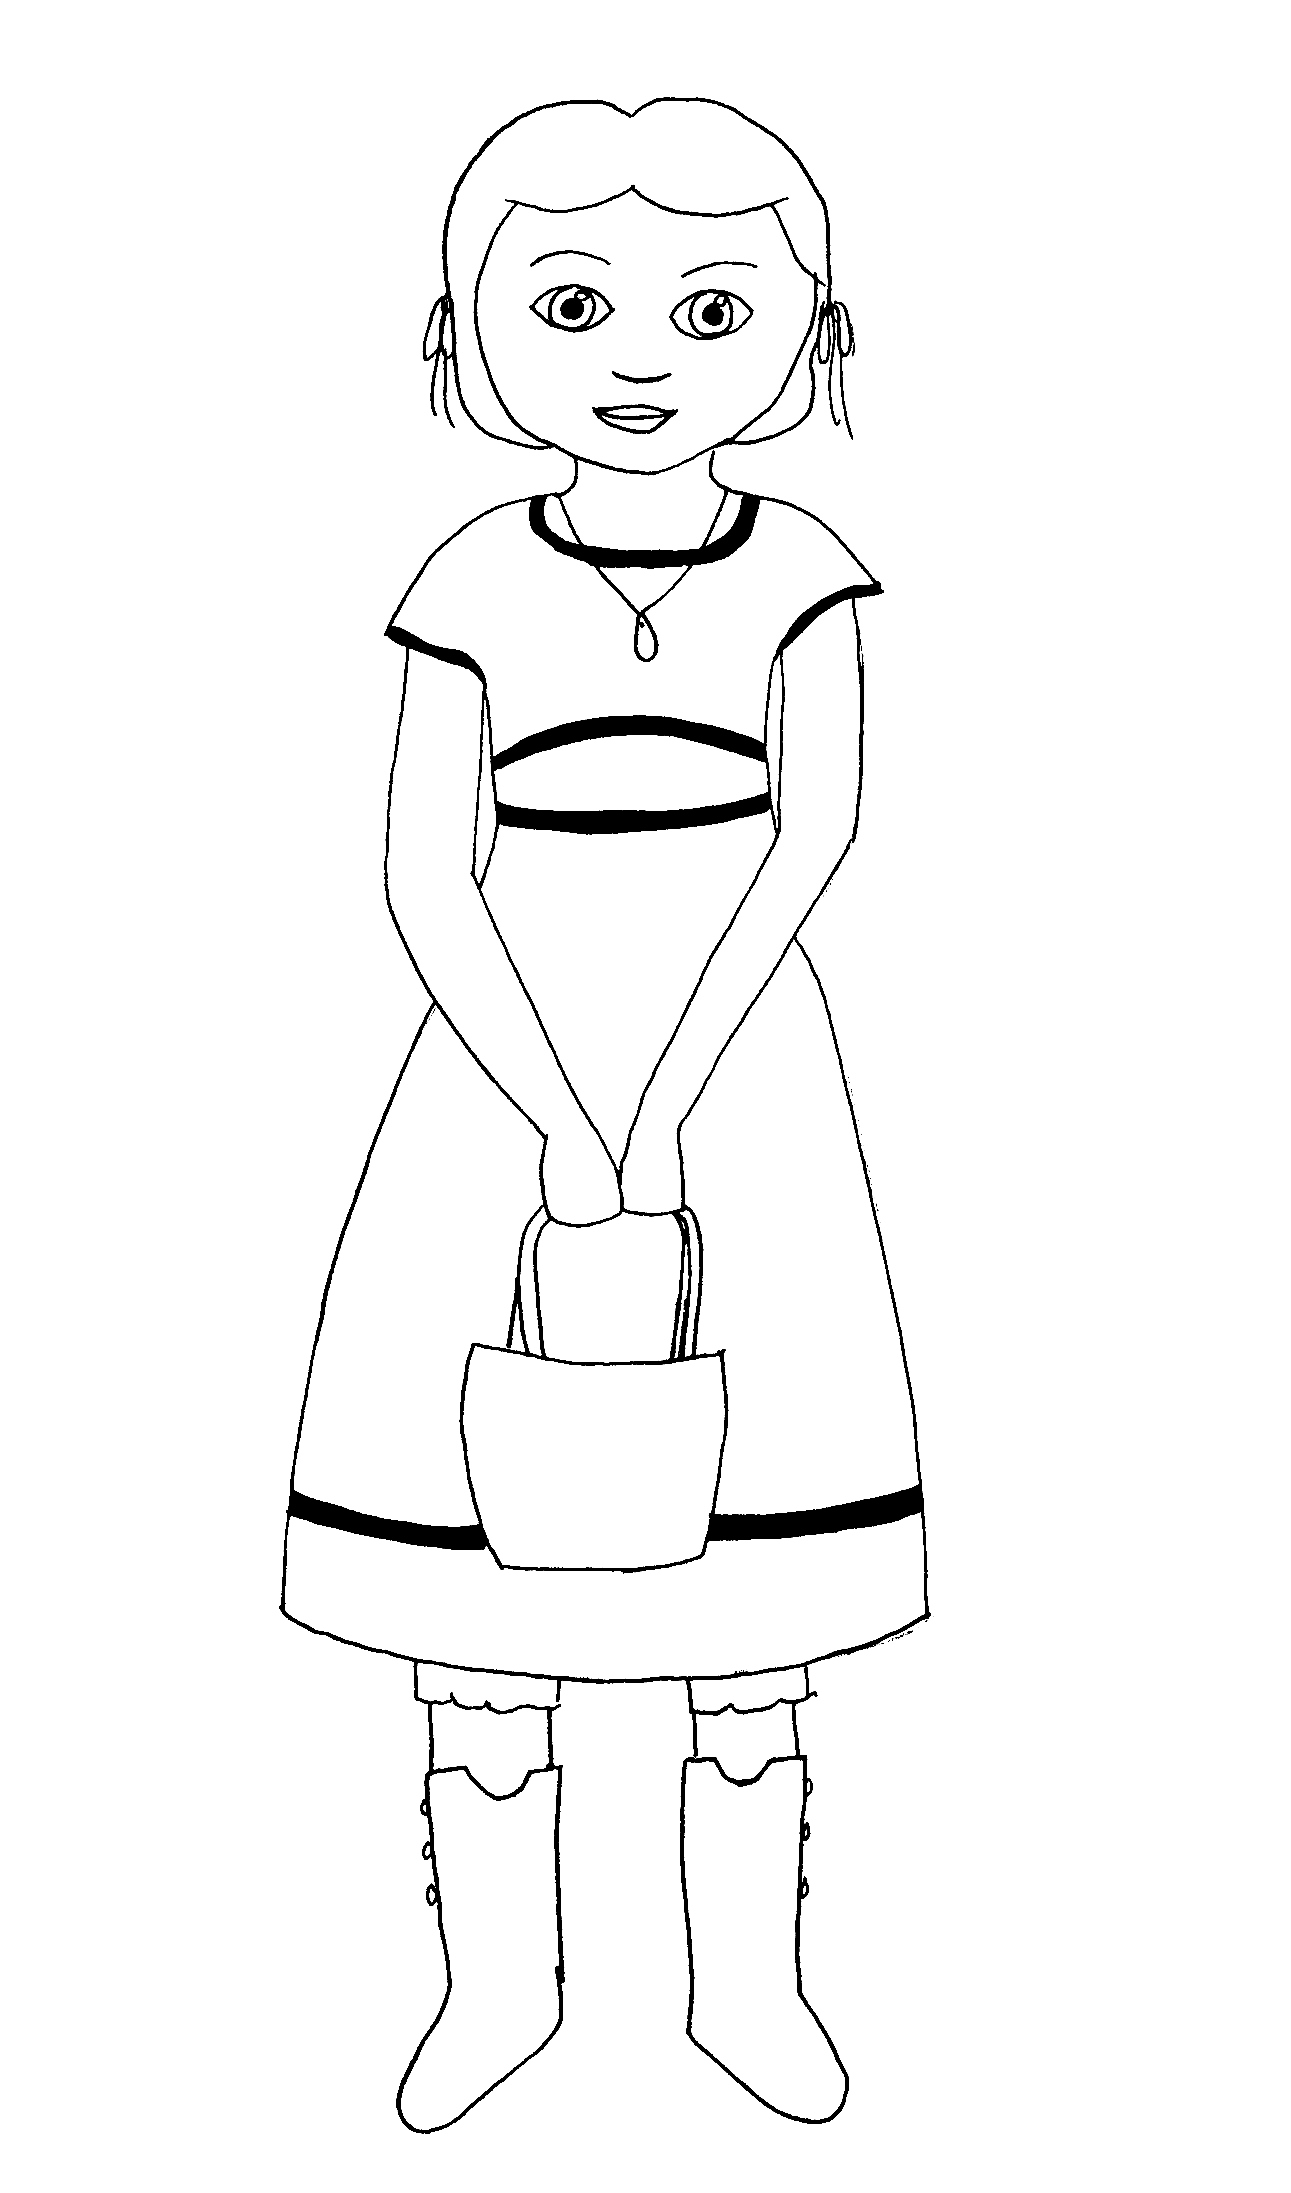 american girl coloring pages grace unique grace thomas american girl doll printable coloring american pages coloring grace girl